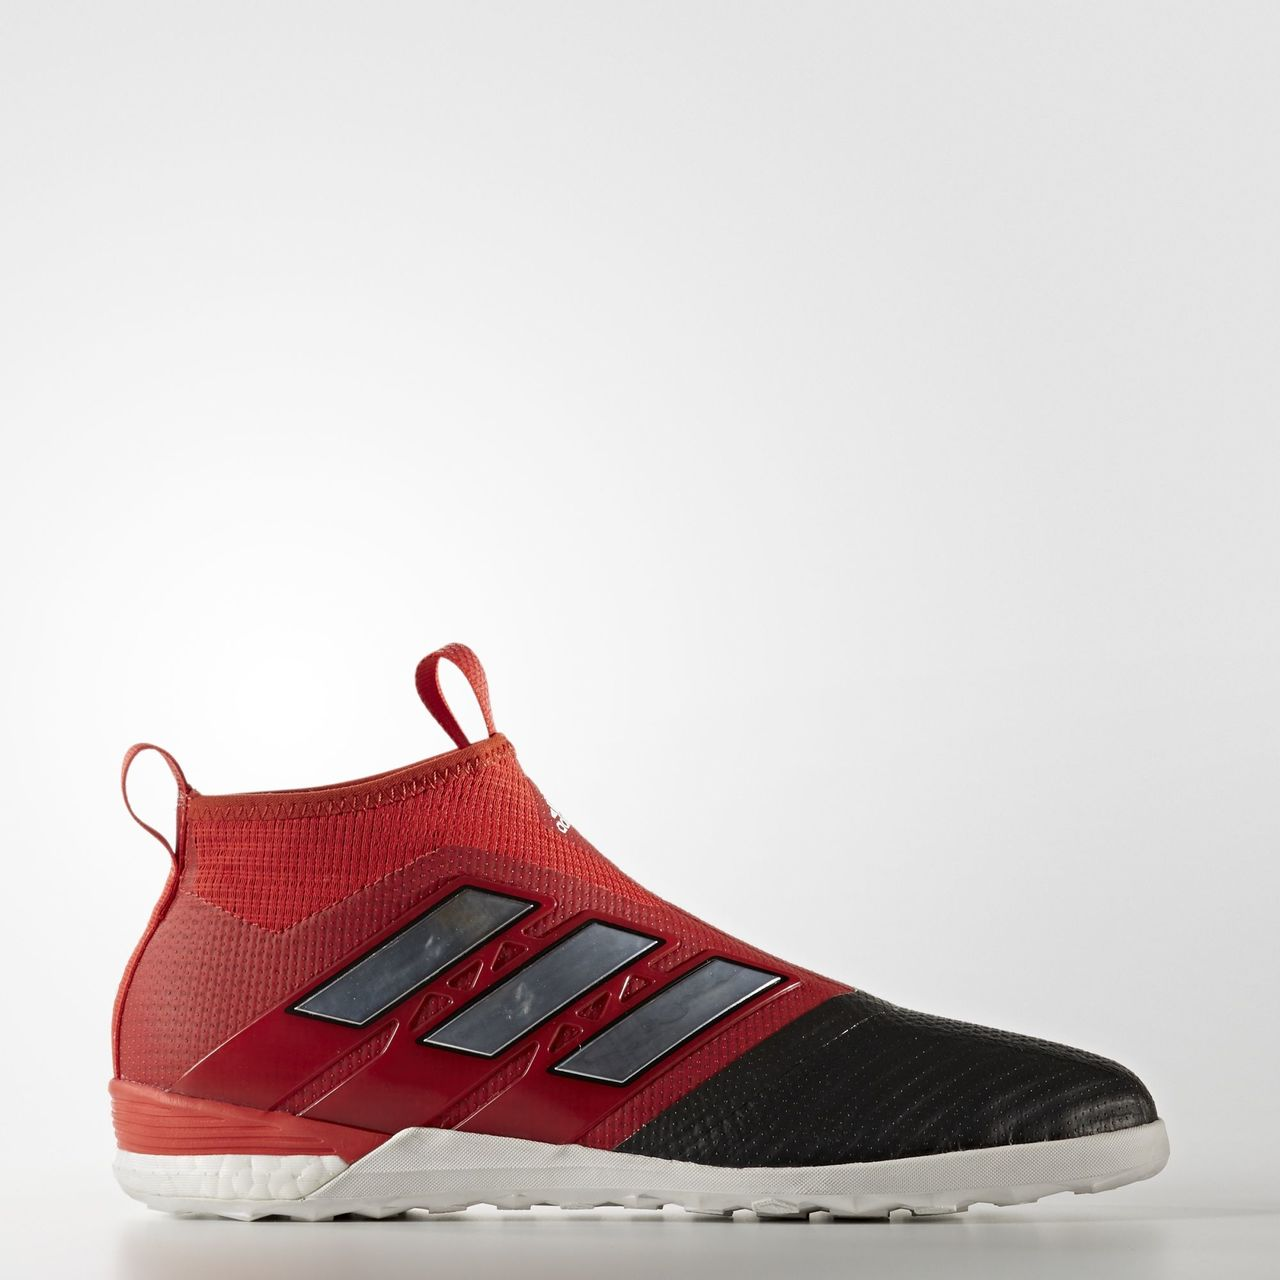 adidas ace tango 17 purecontrol indoor boots red. Black Bedroom Furniture Sets. Home Design Ideas